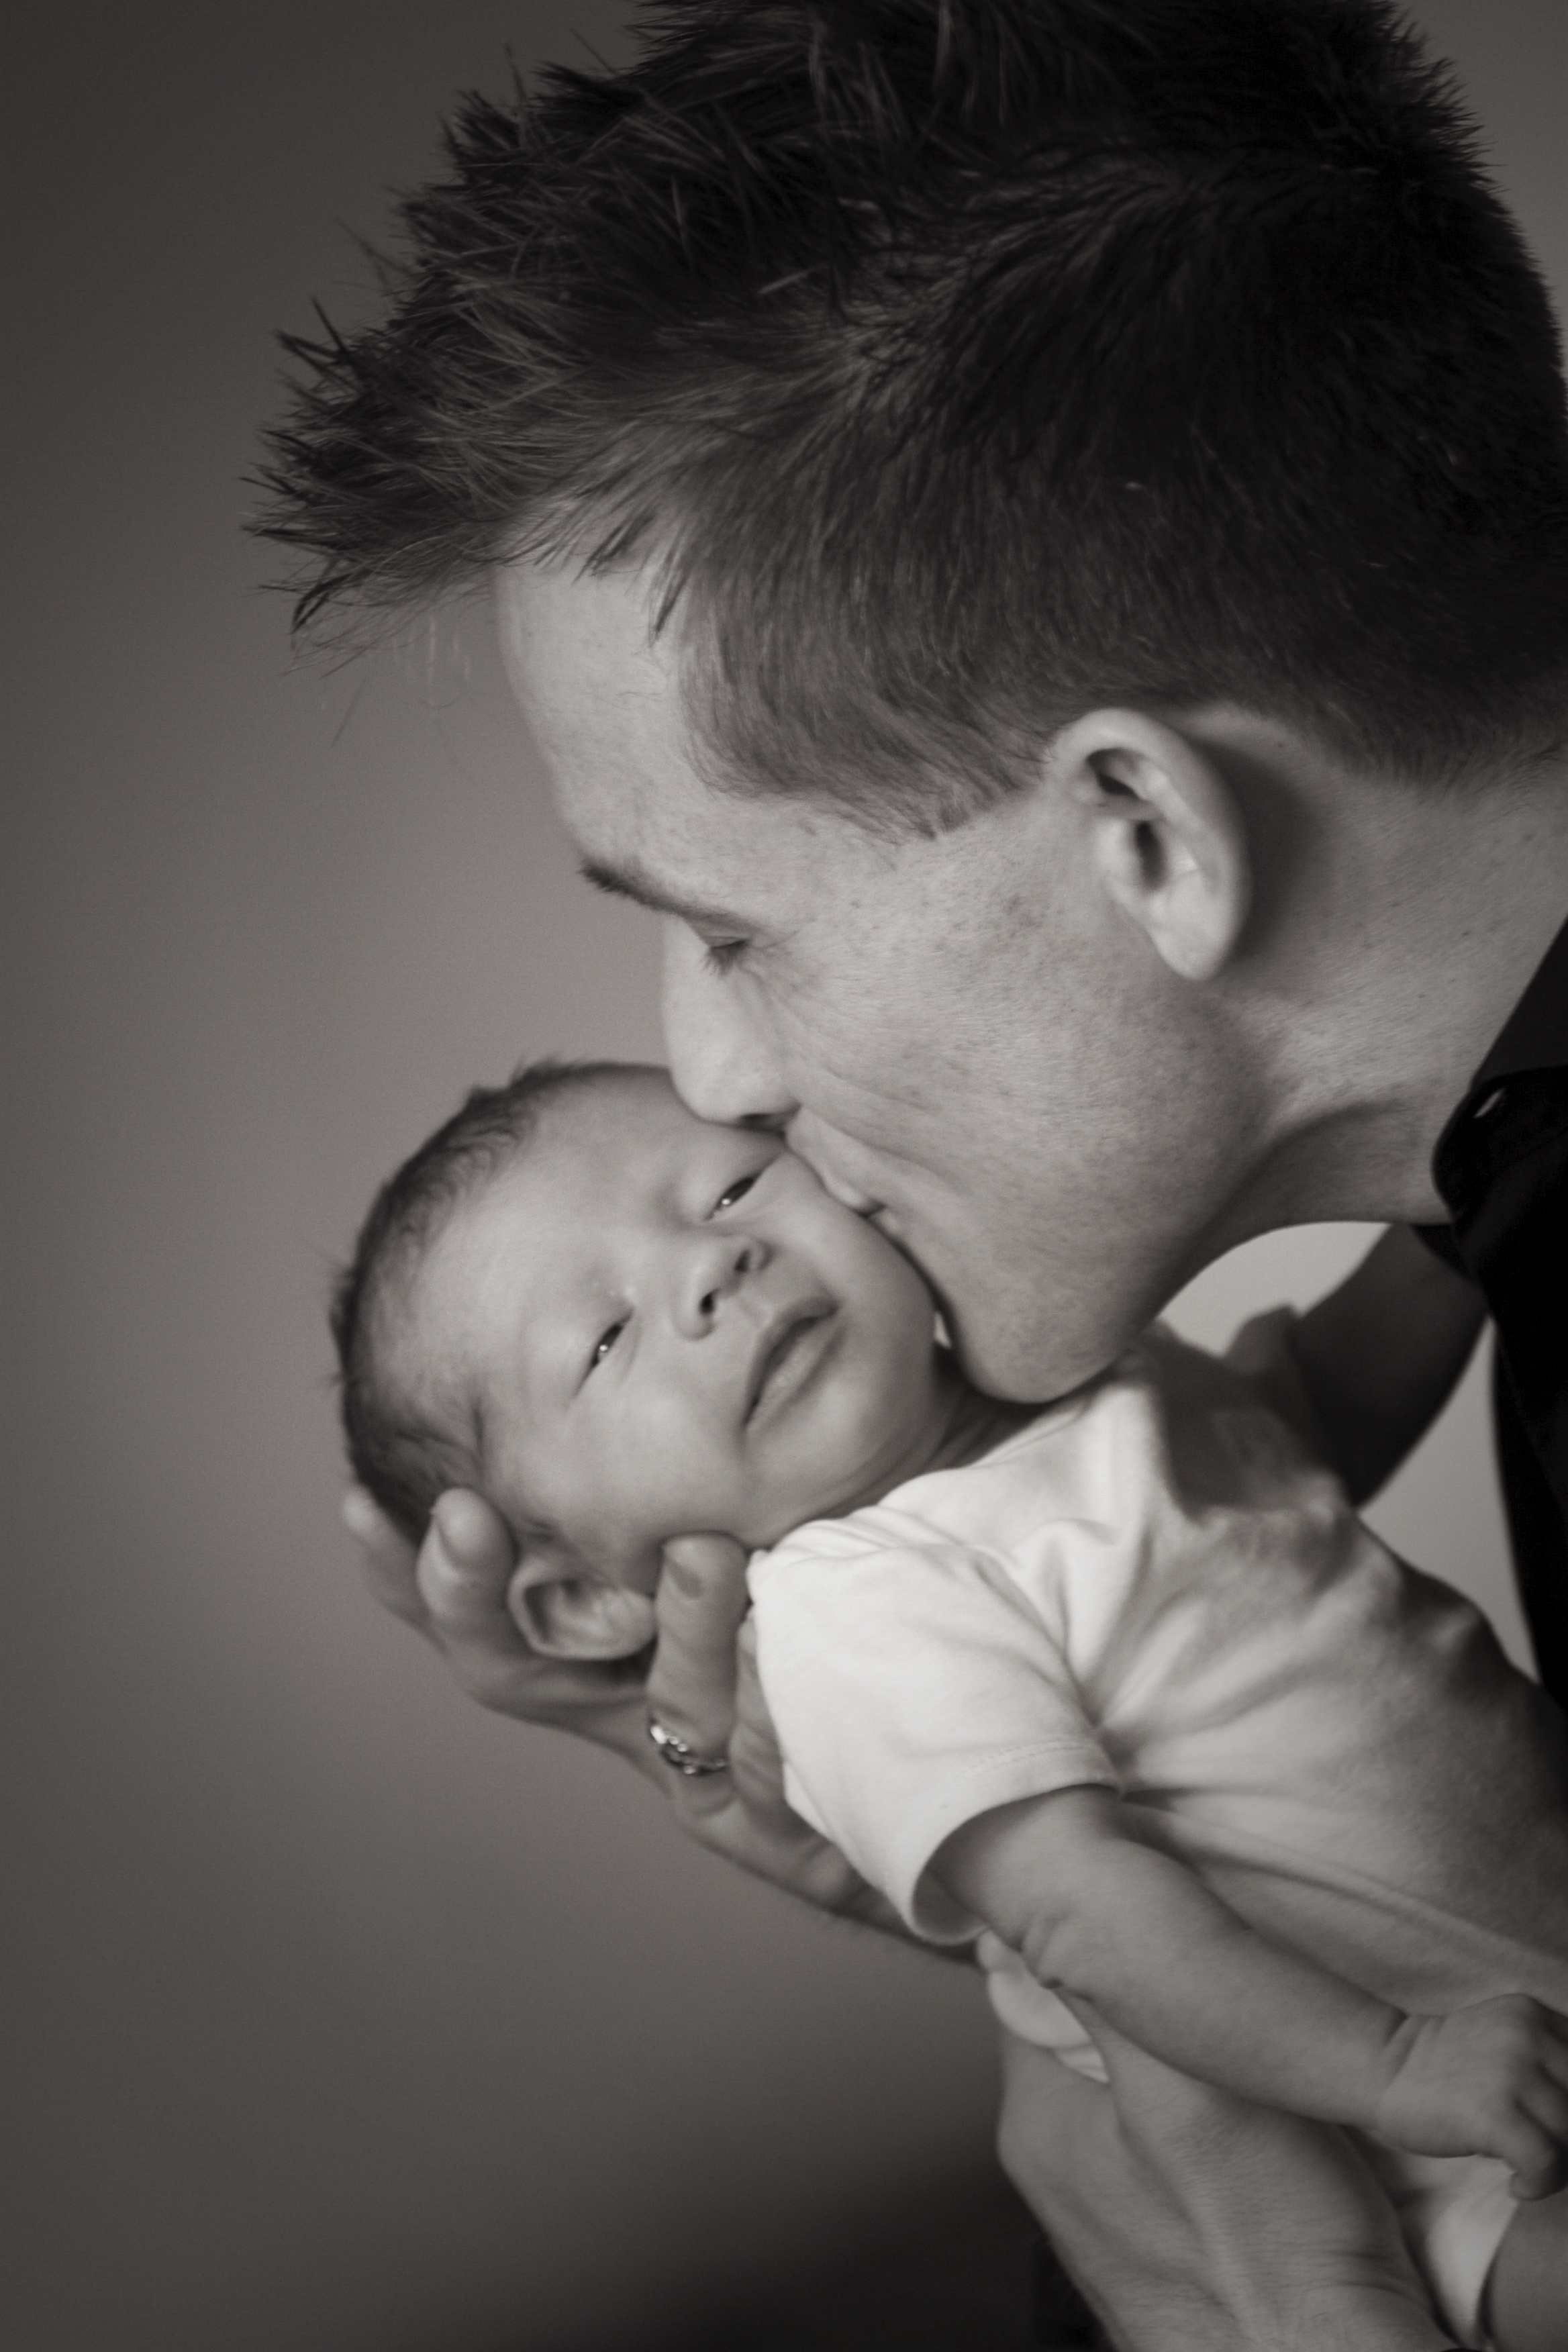 """The images that you captured of our newborn son are just priceless! I have them displayed on our living room wall and enjoy looking at them every single day!""  Mike and Lexi Winnen"